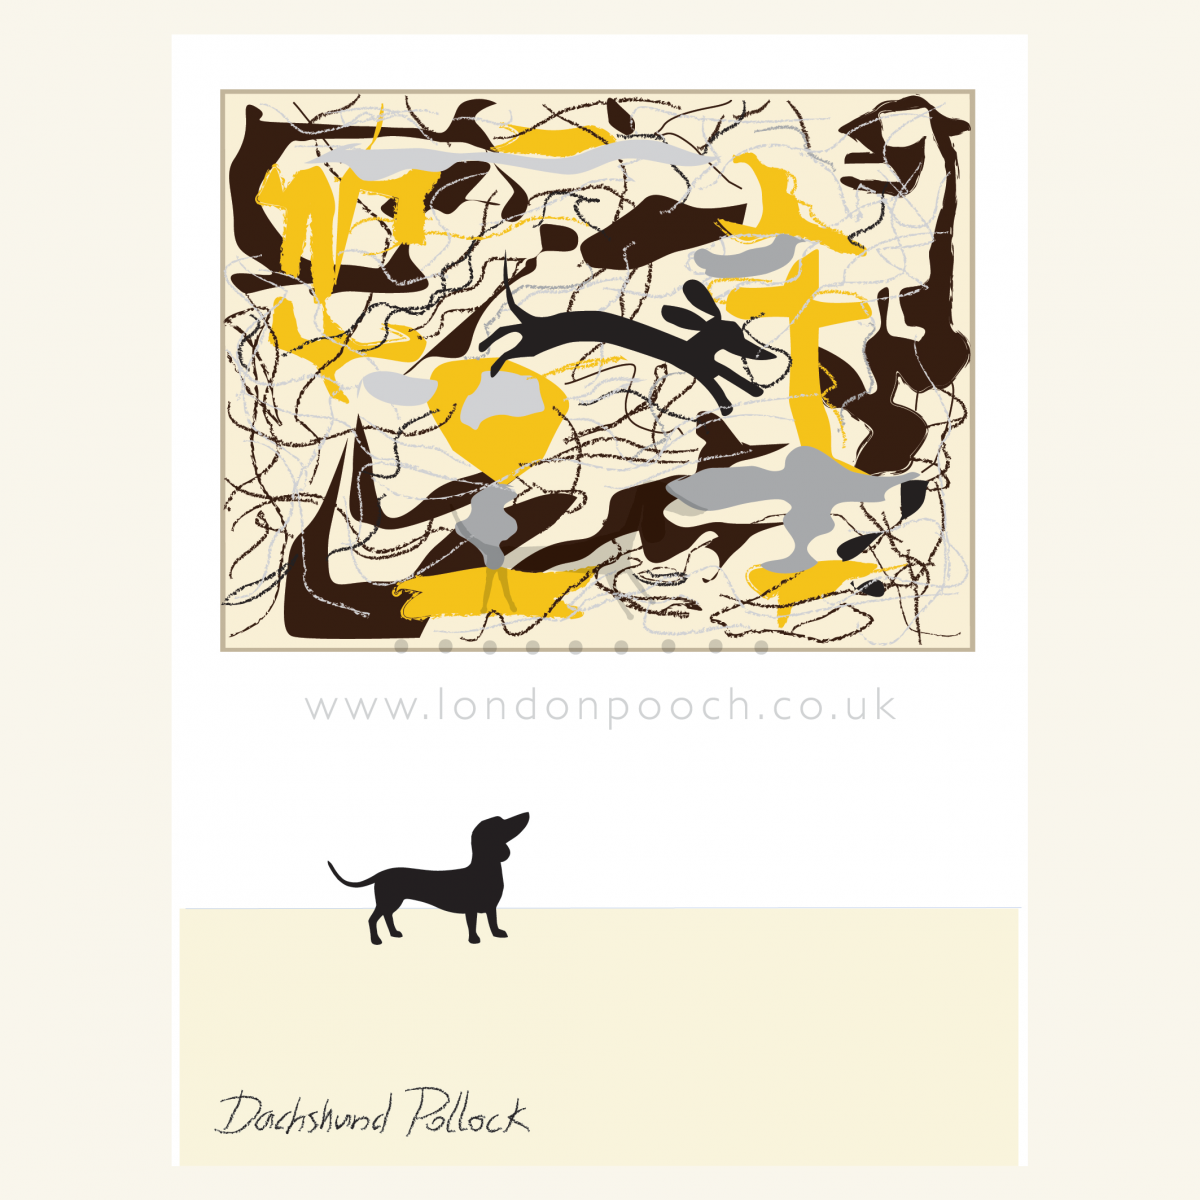 Dachshund Pollock Print shows a small dachshund gazing into abstract art. A true homage to Jackson Pollock as a small dog skip around the picture.